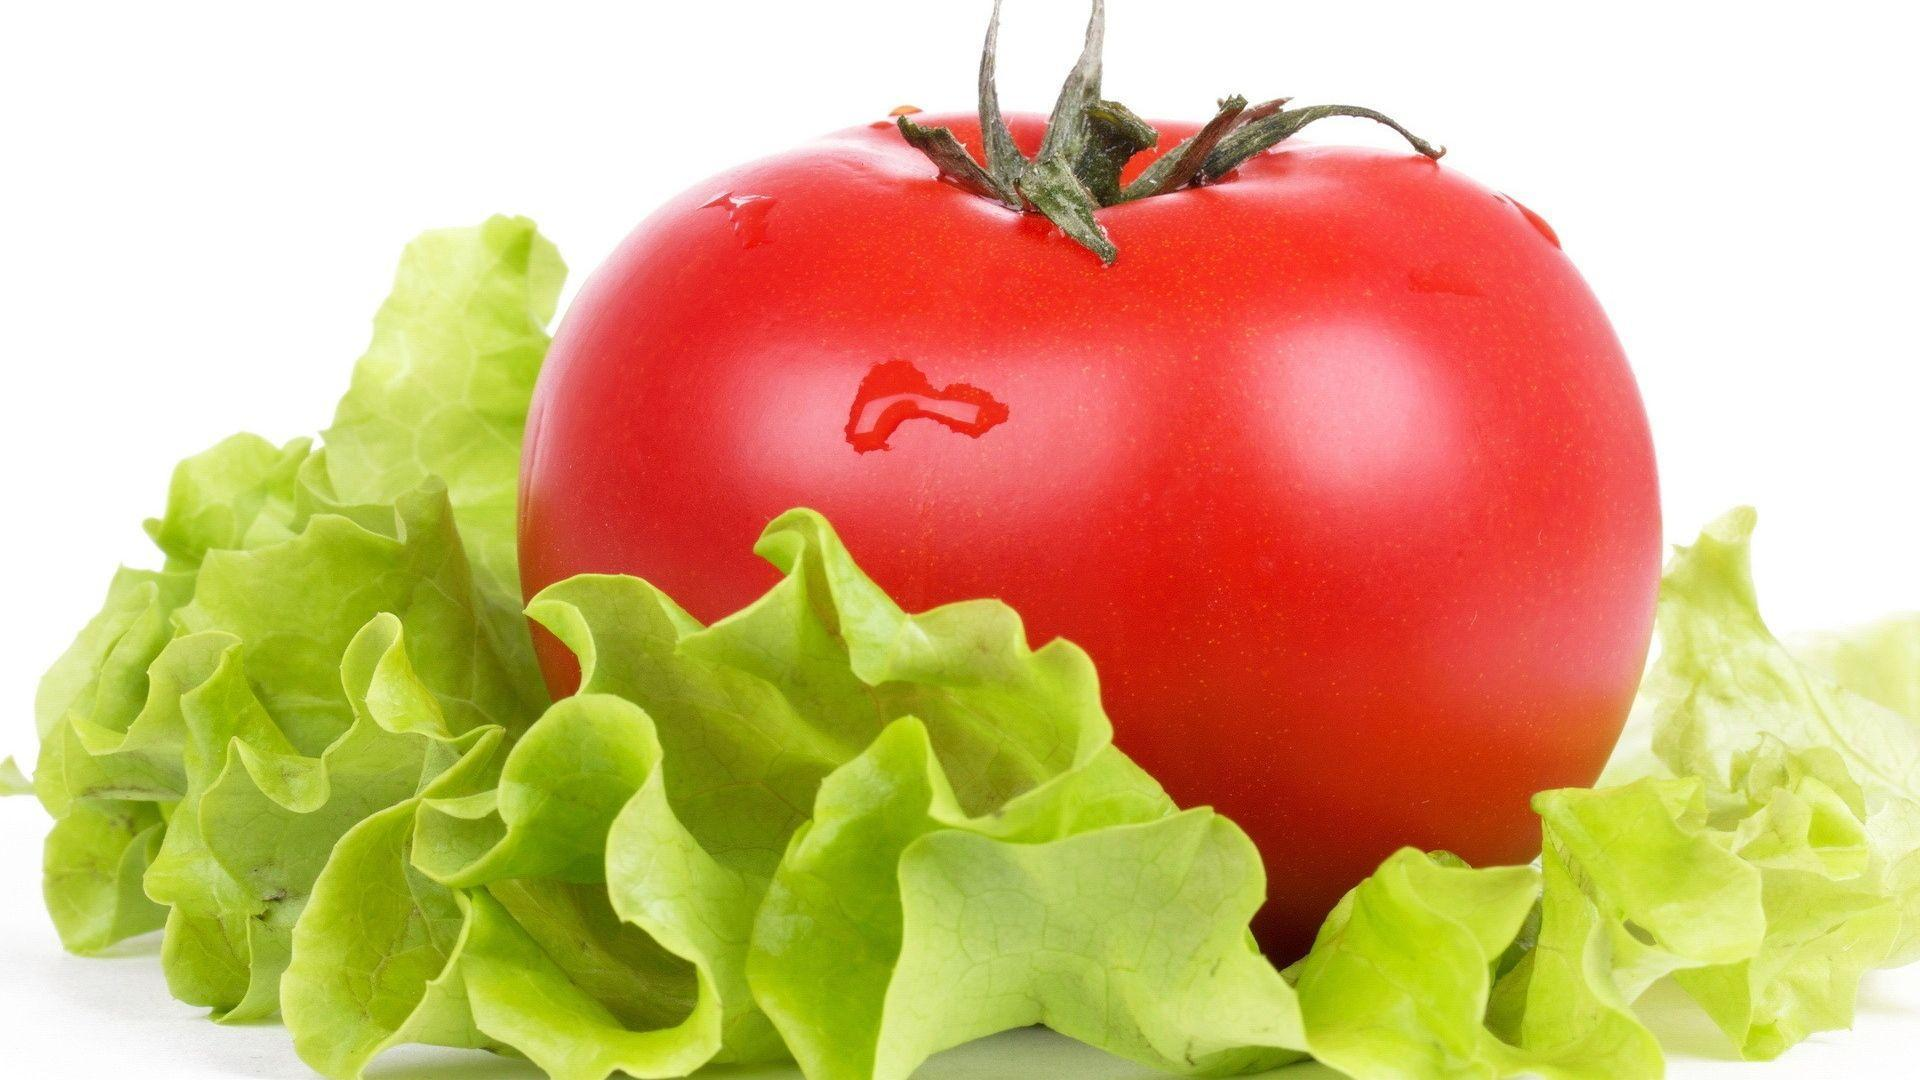 Download Wallpapers 1920x1080 Tomato, Salad, Vegetables, Fresh Full